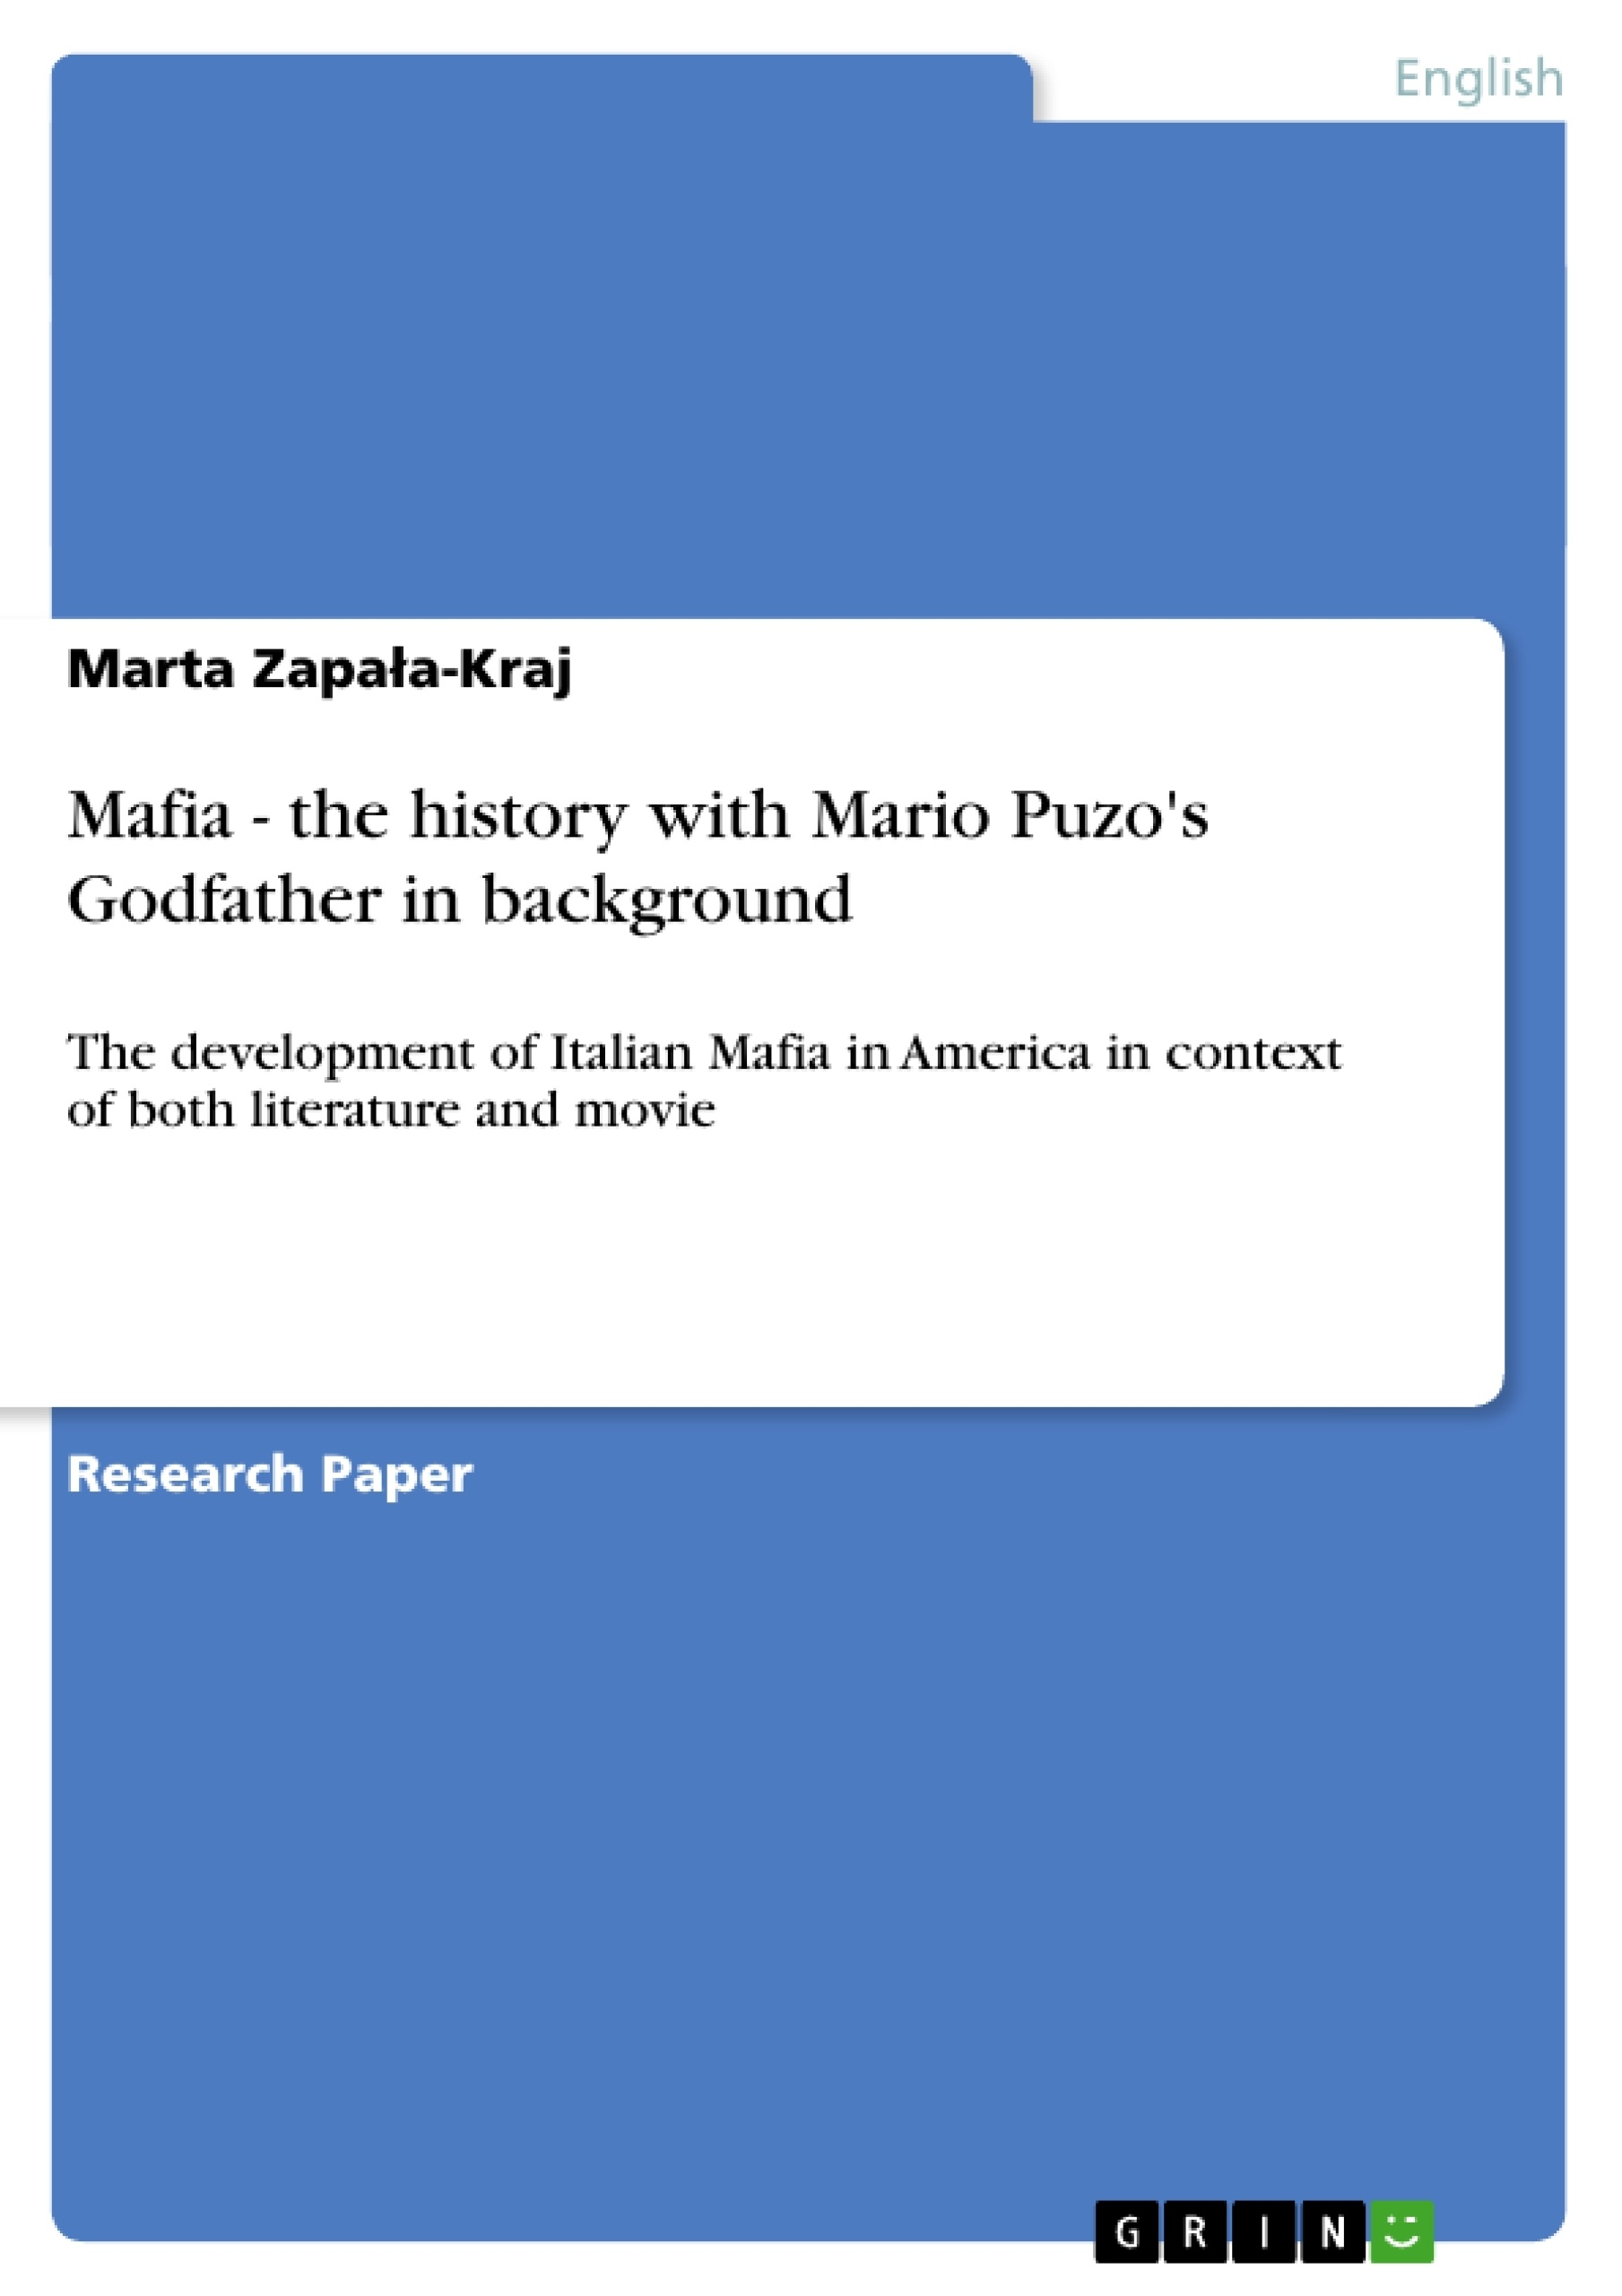 Title: Mafia - the history with Mario Puzo's Godfather in background